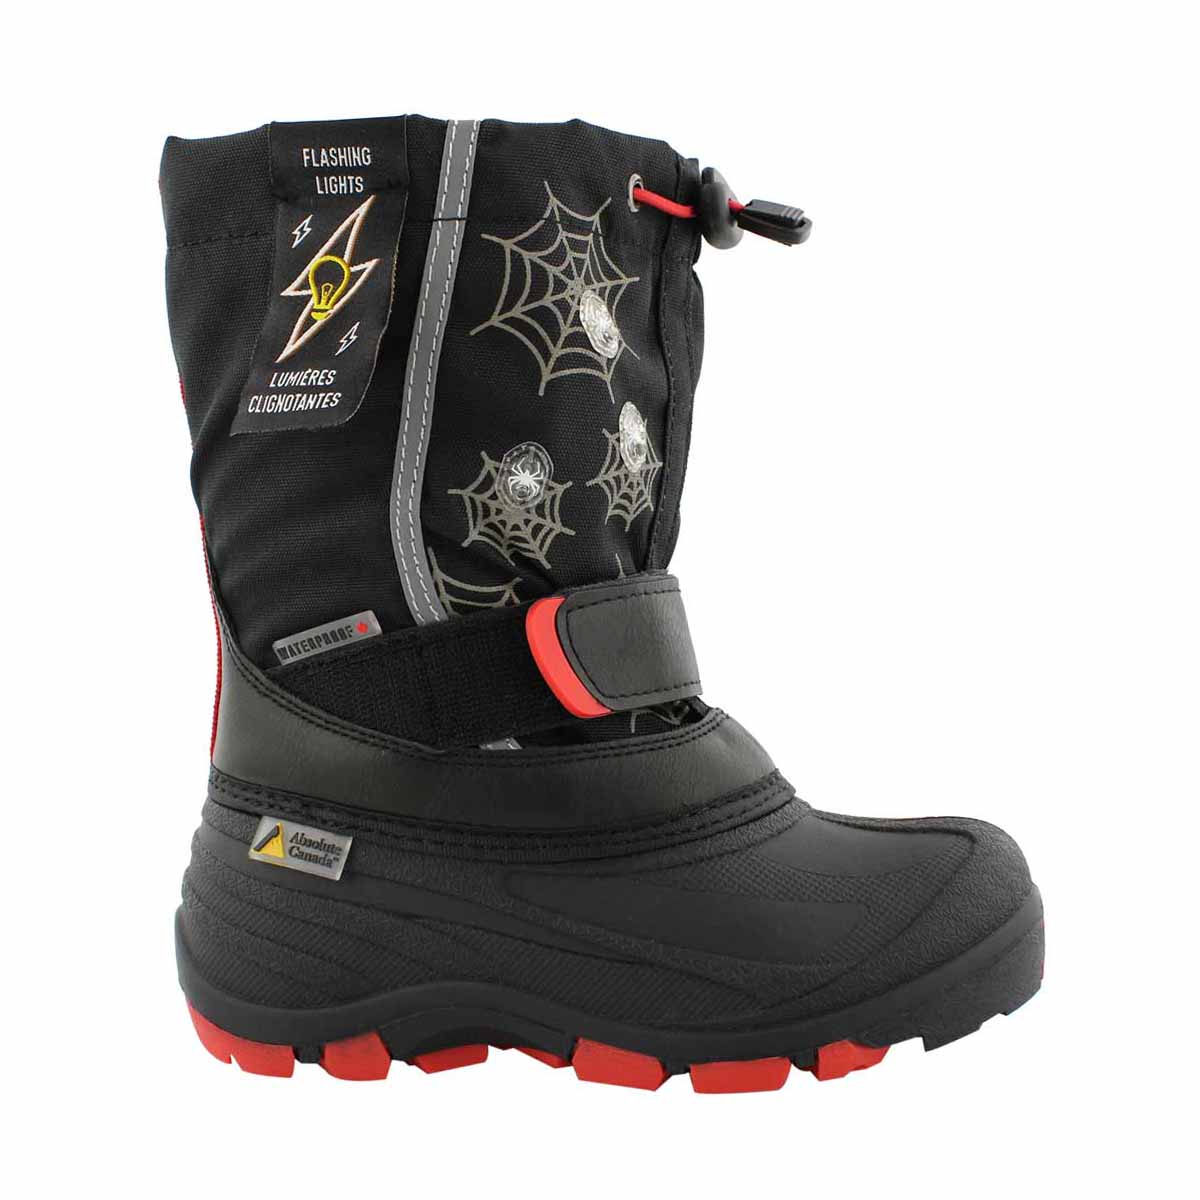 Bys Frosty bk/rd wp lightup wntr boot